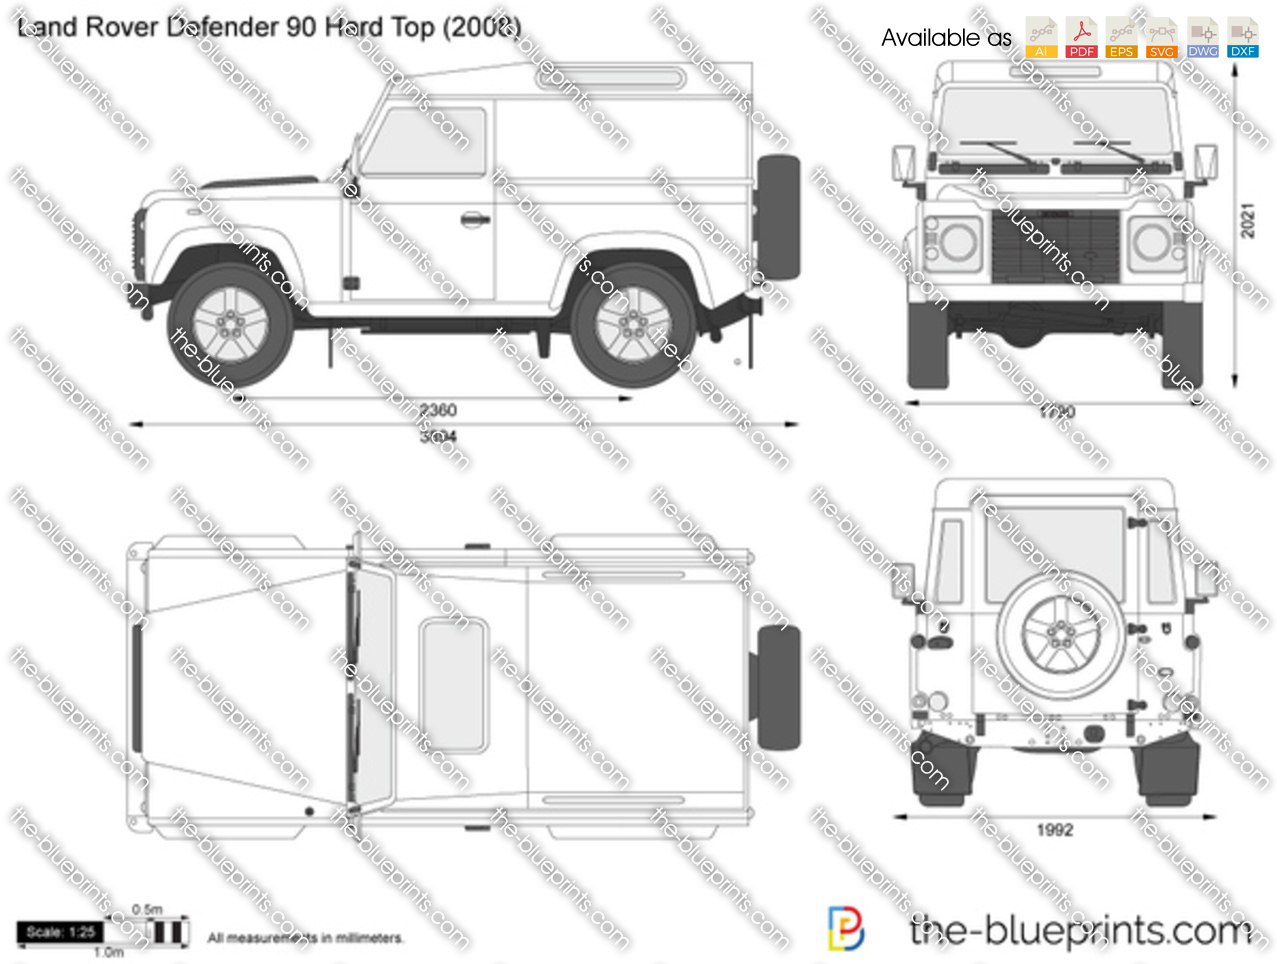 Land Rover Defender 90 Hard Top 2003